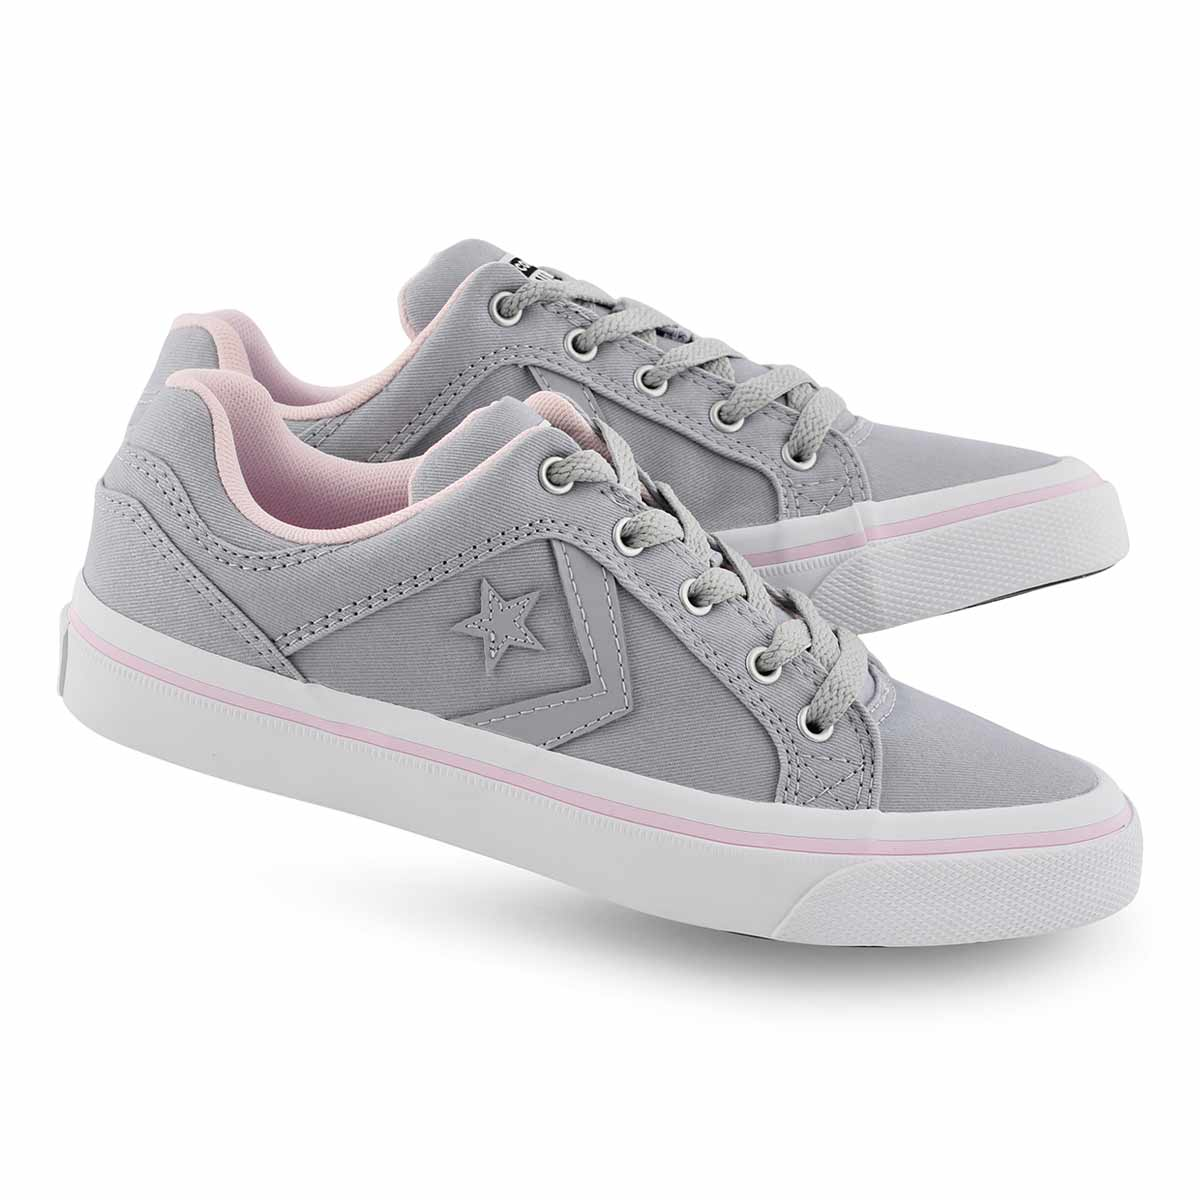 Lds Flyer Pack wolf gry/pink snkr